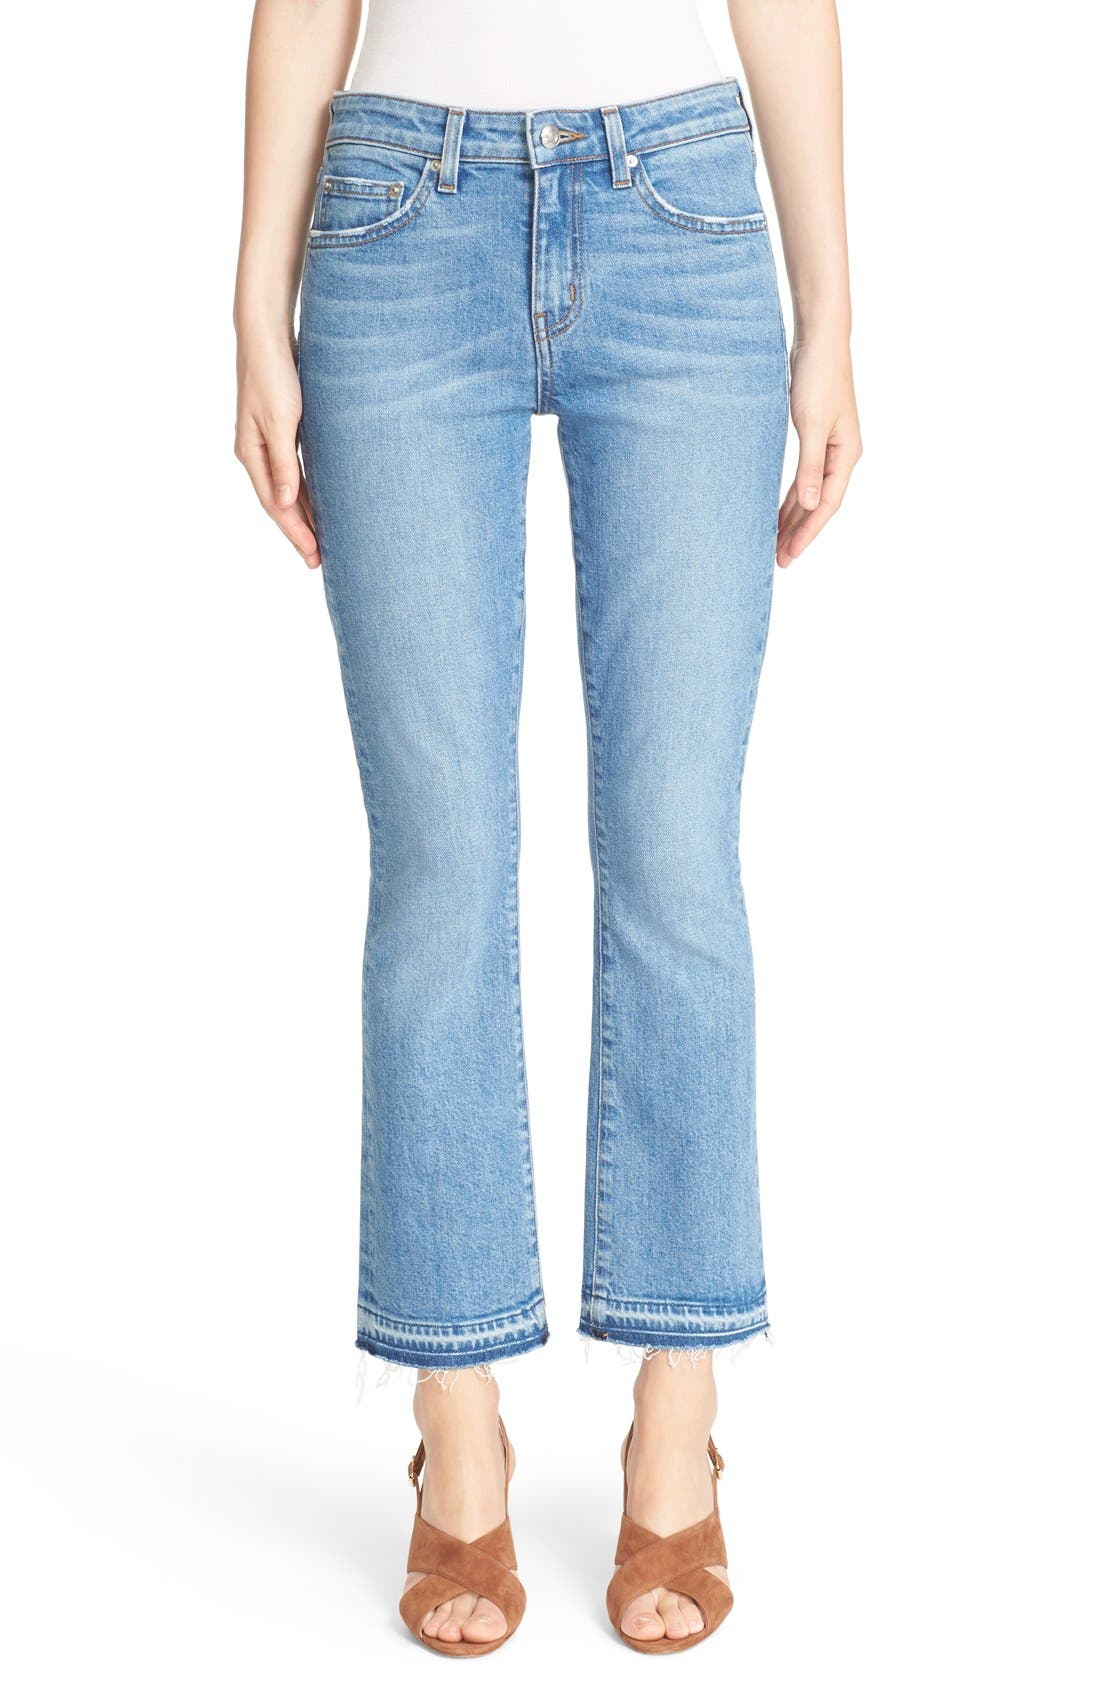 Derek Lam 10 Crosby 'Gia' Crop Flare Jeans (Light Wash)